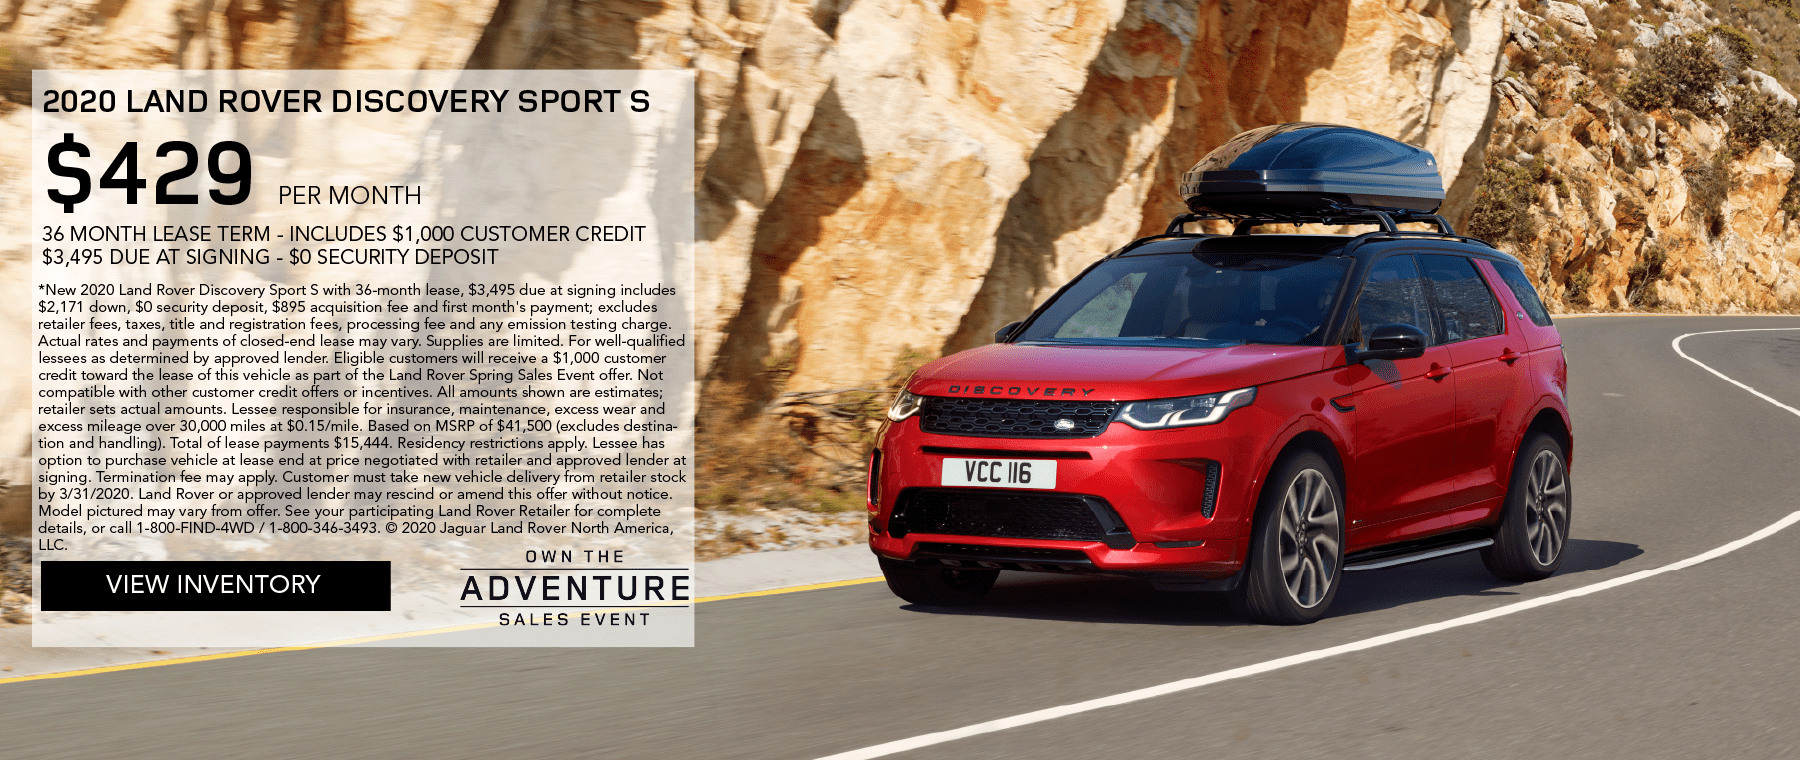 2020 LAND ROVER DISCOVERY SPORT S. $429 PER MONTH. 36 MONTH LEASE TERM. $3,495 CASH DUE AT SIGNING. INCLUDES $1,000 CUSTOMER CREDIT. $0 SECURITY DEPOSIT. 10,000 MILES PER YEAR. OFFER ENDS 3/31/2020. OWN THE ADVENTURE SALES EVENT. VIEW INVENTORY. RED LAND ROVER DISCOVERY SPORT S DRIVING DOWN ROAD THROUGH MOUNTAINS.